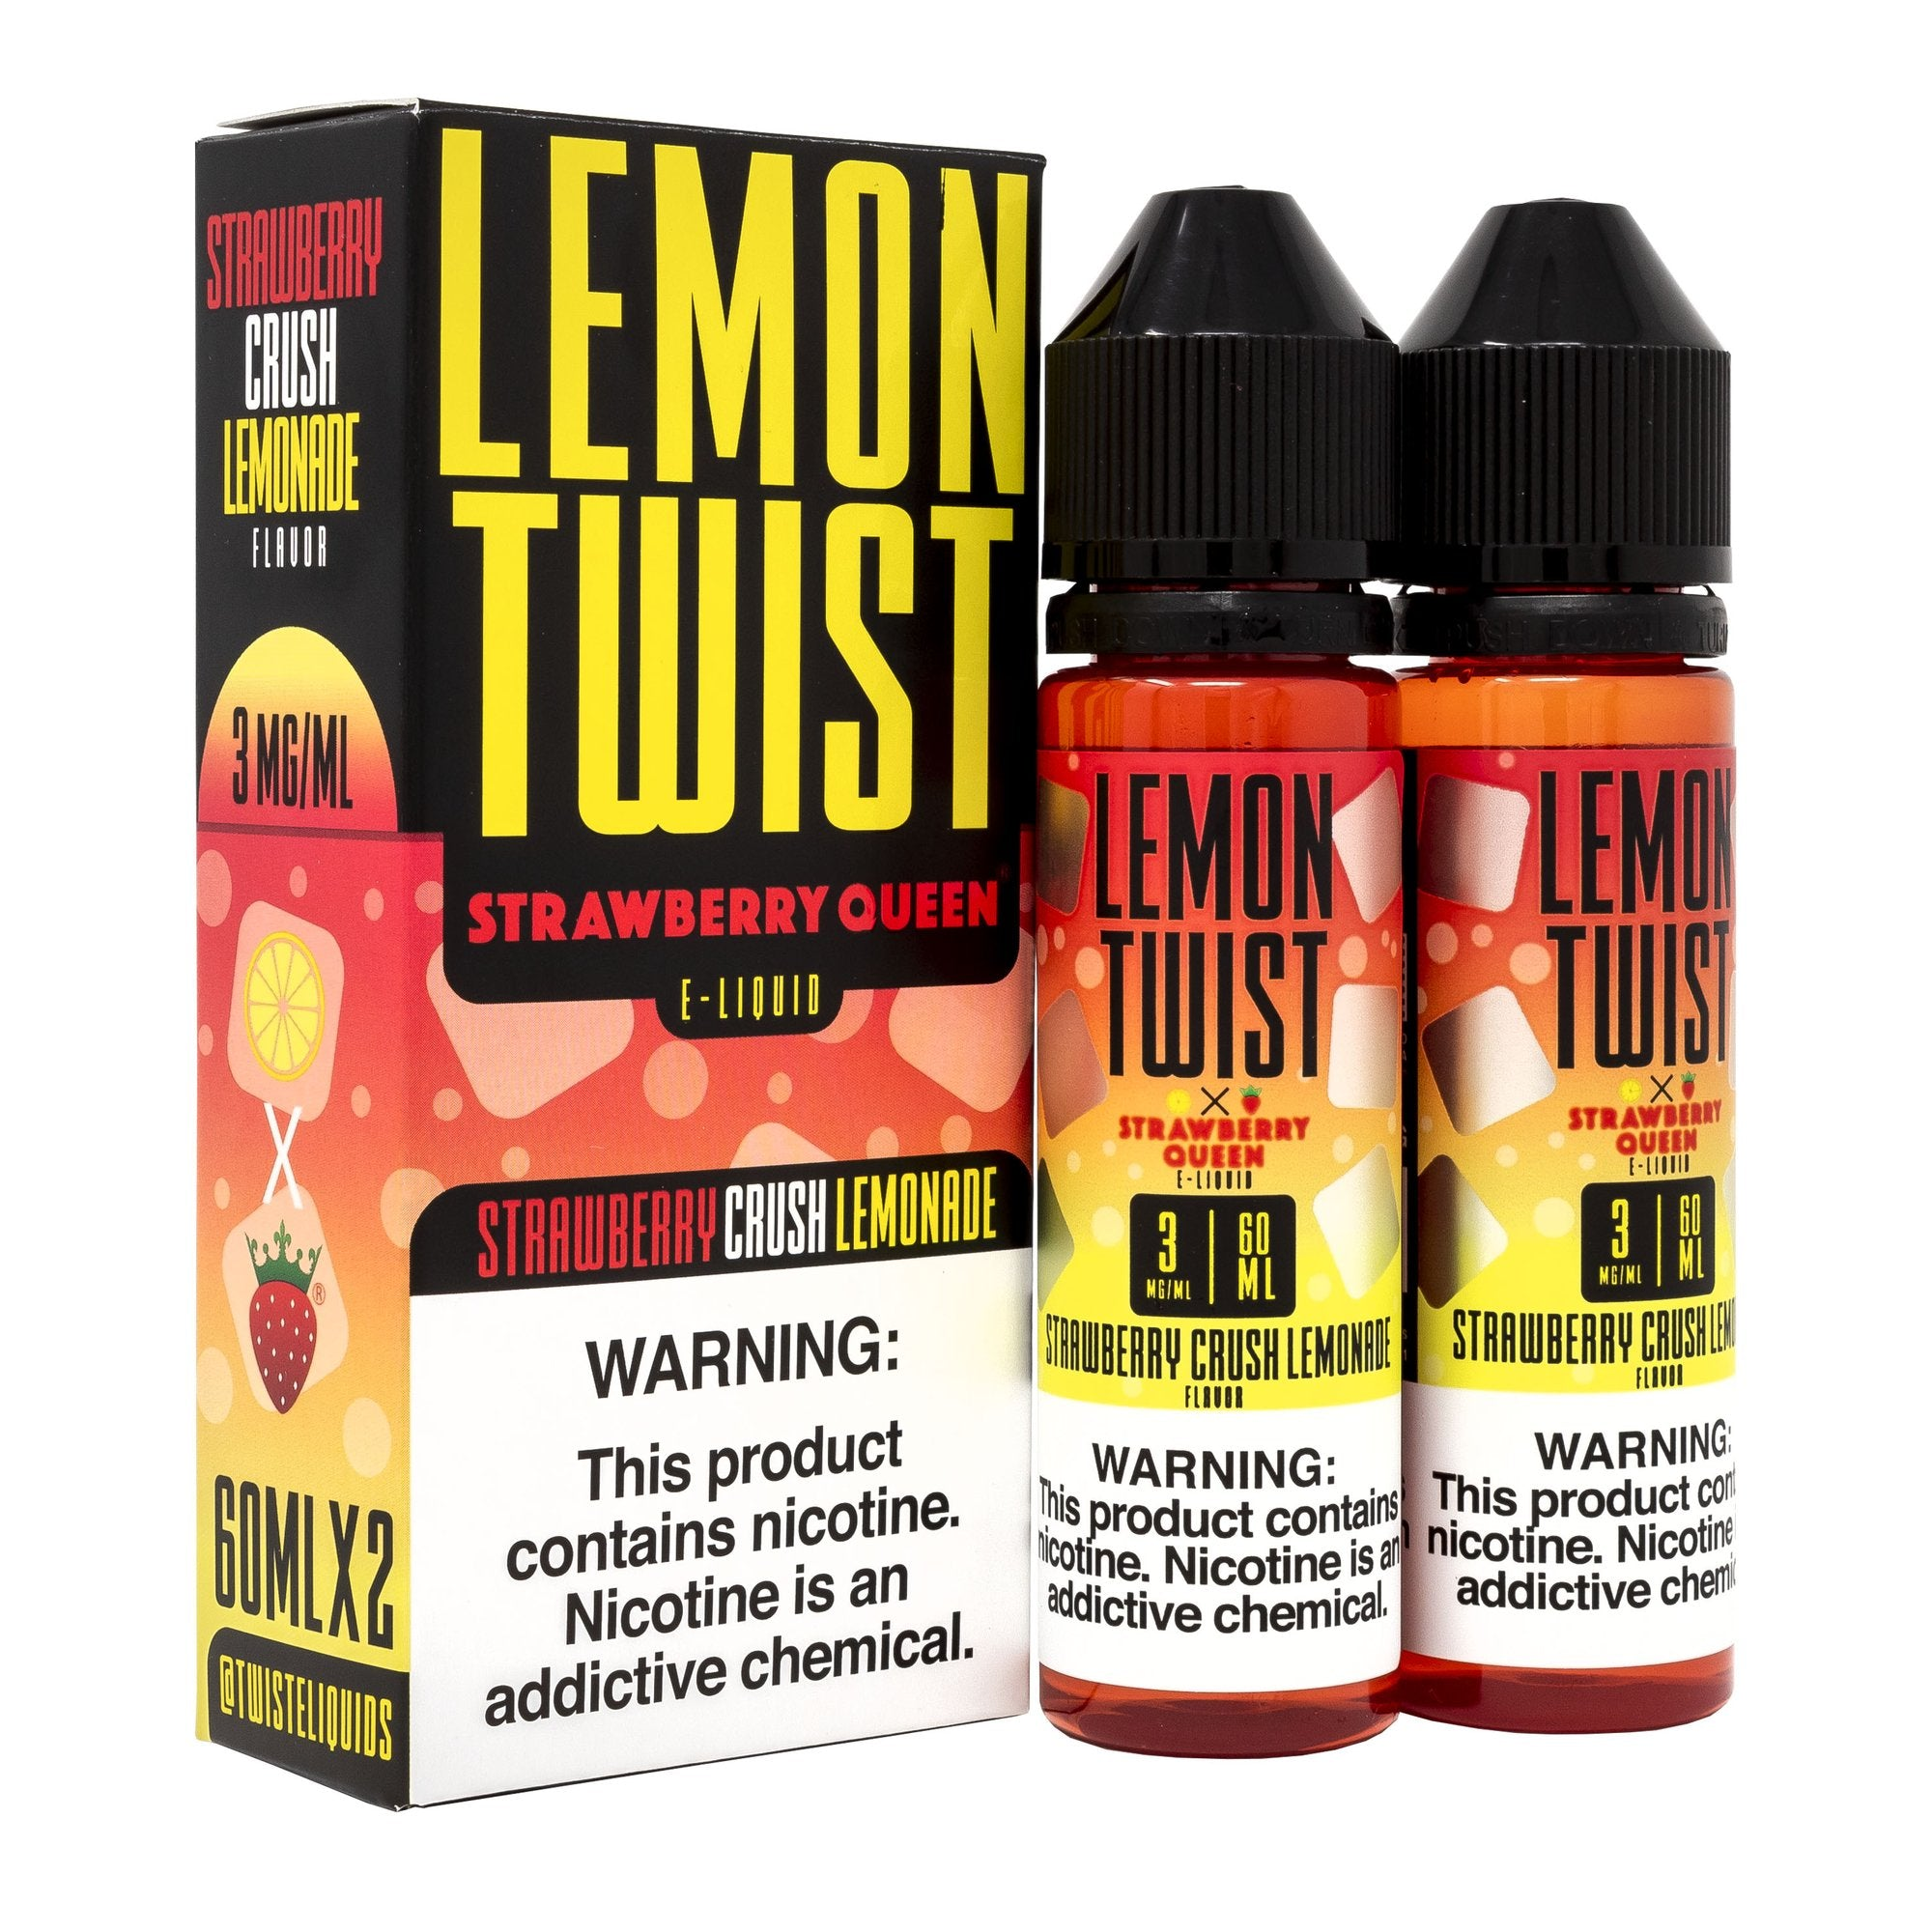 Lemon Twist - Strawberry Crush Lemonade (120ml)